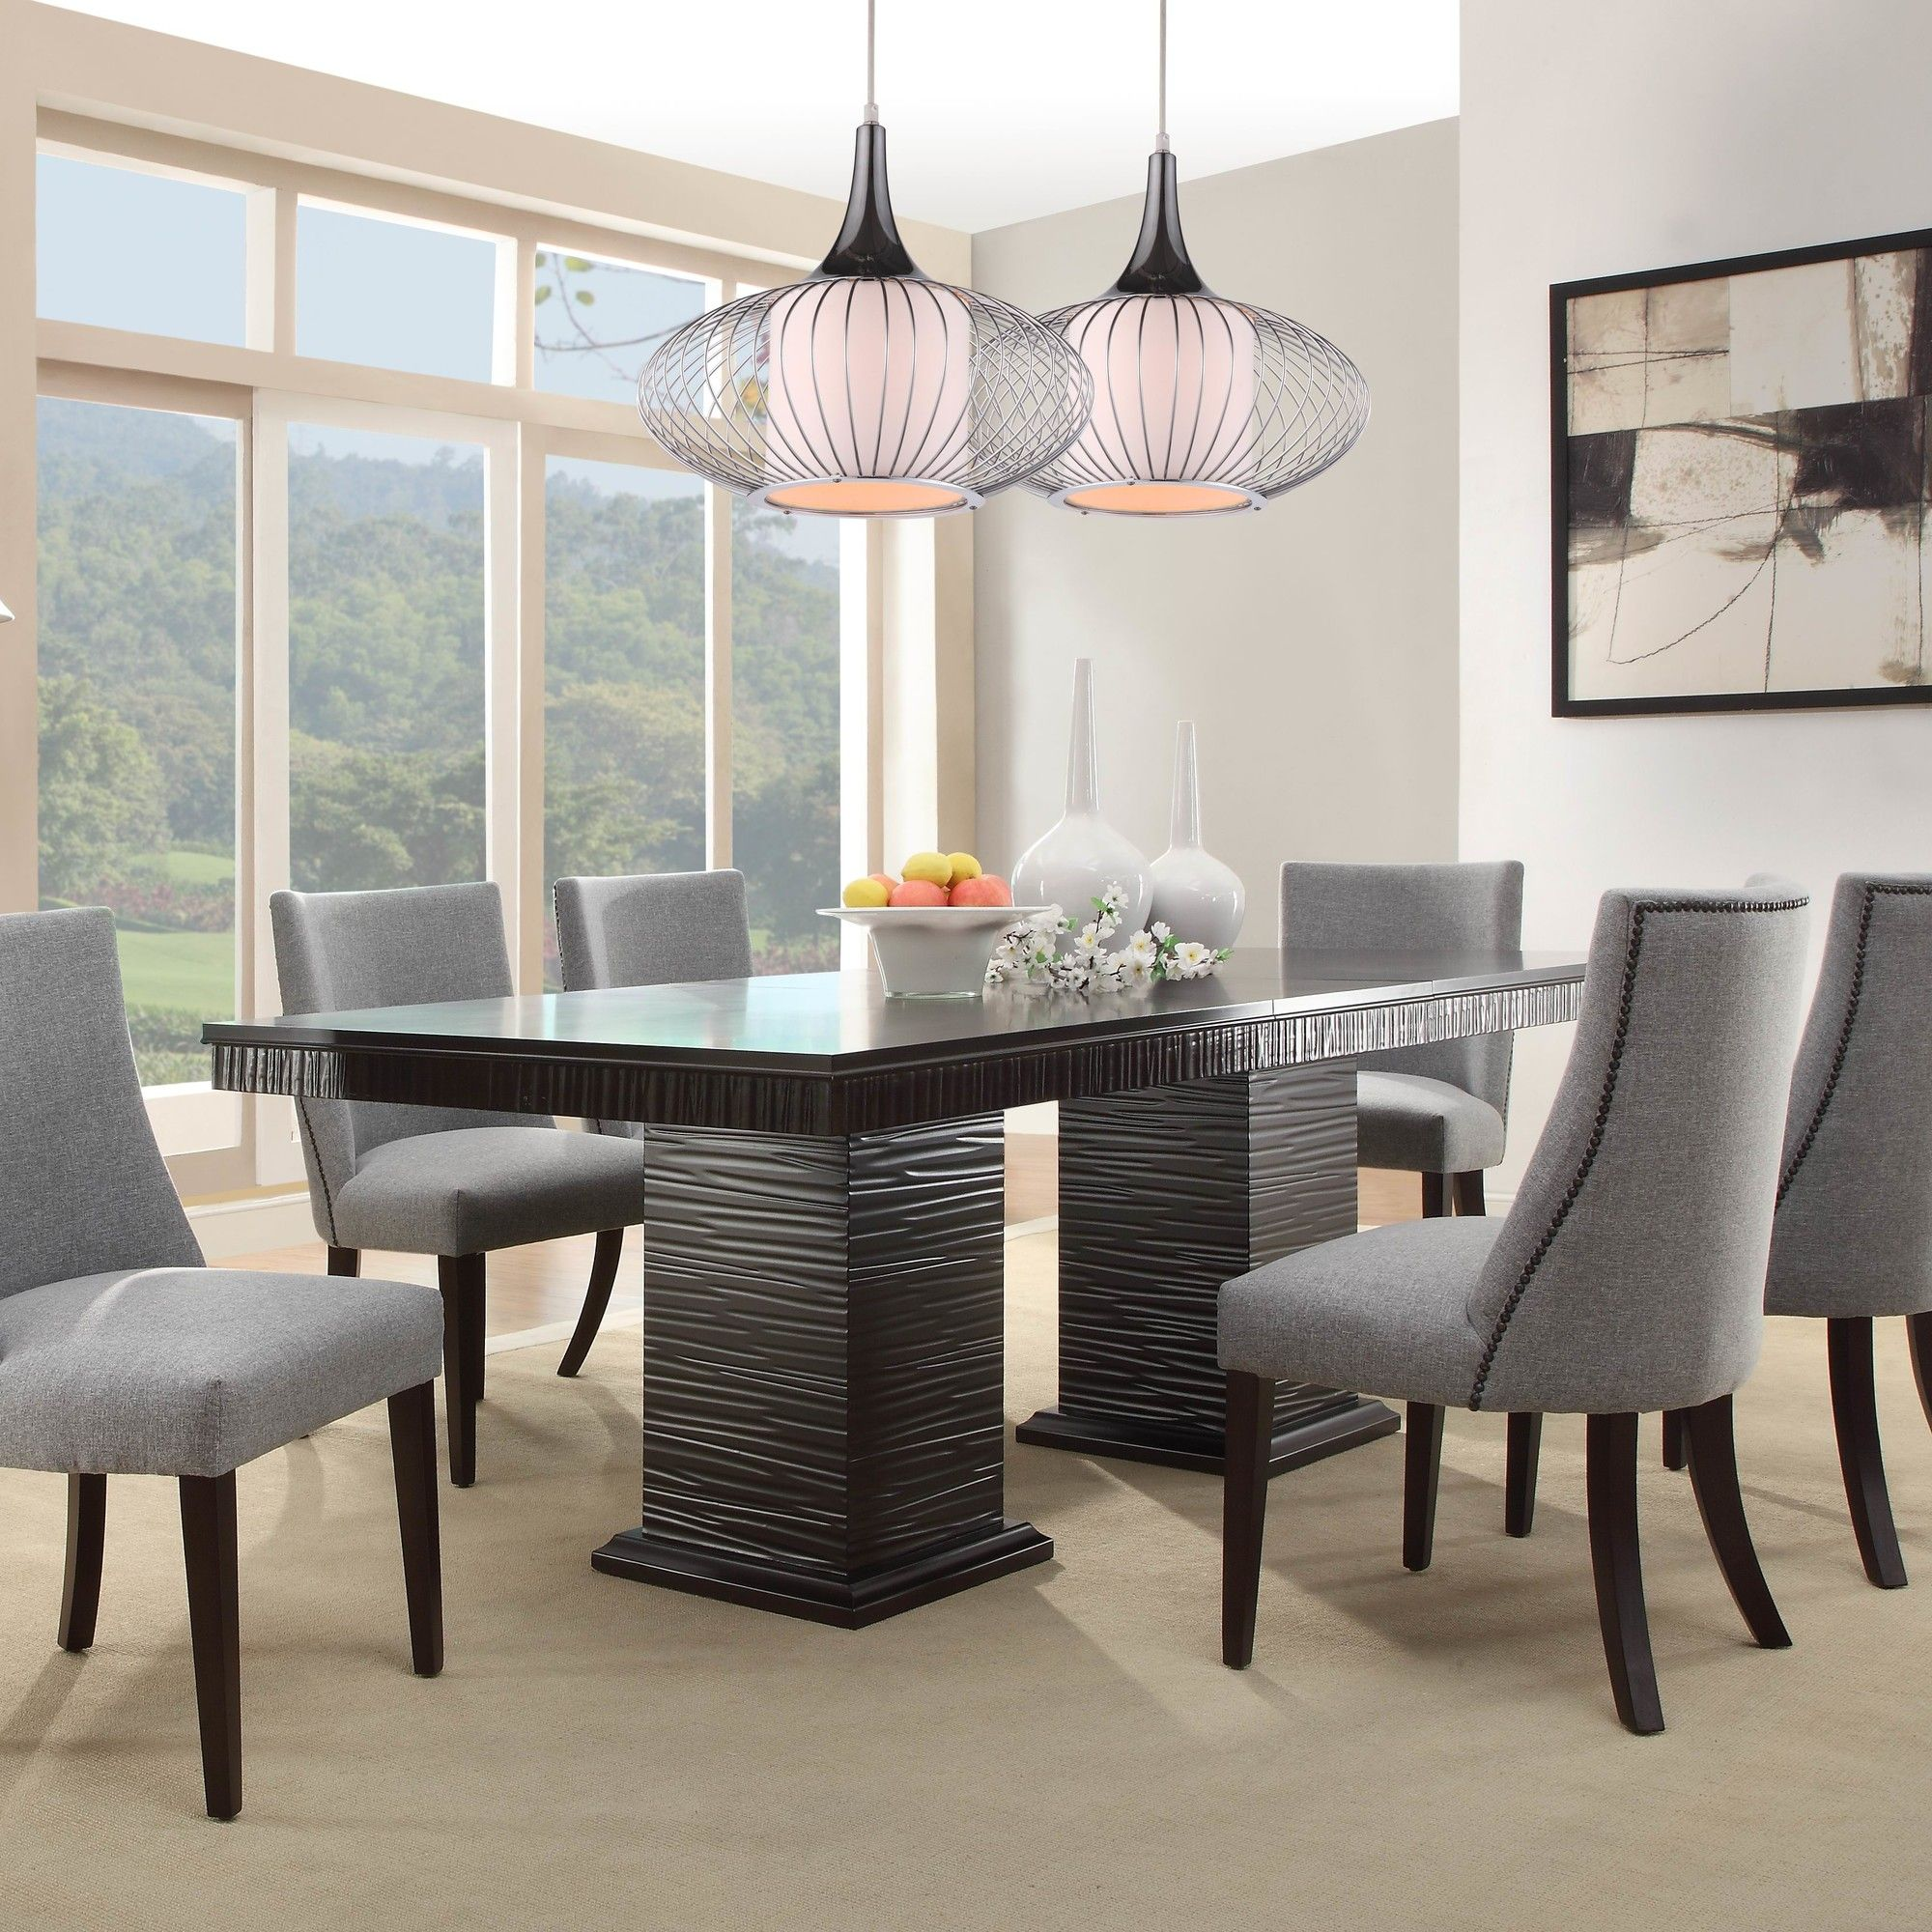 Superb Darlene Extendable Dining Table Products Dining Table In Home Interior And Landscaping Mentranervesignezvosmurscom